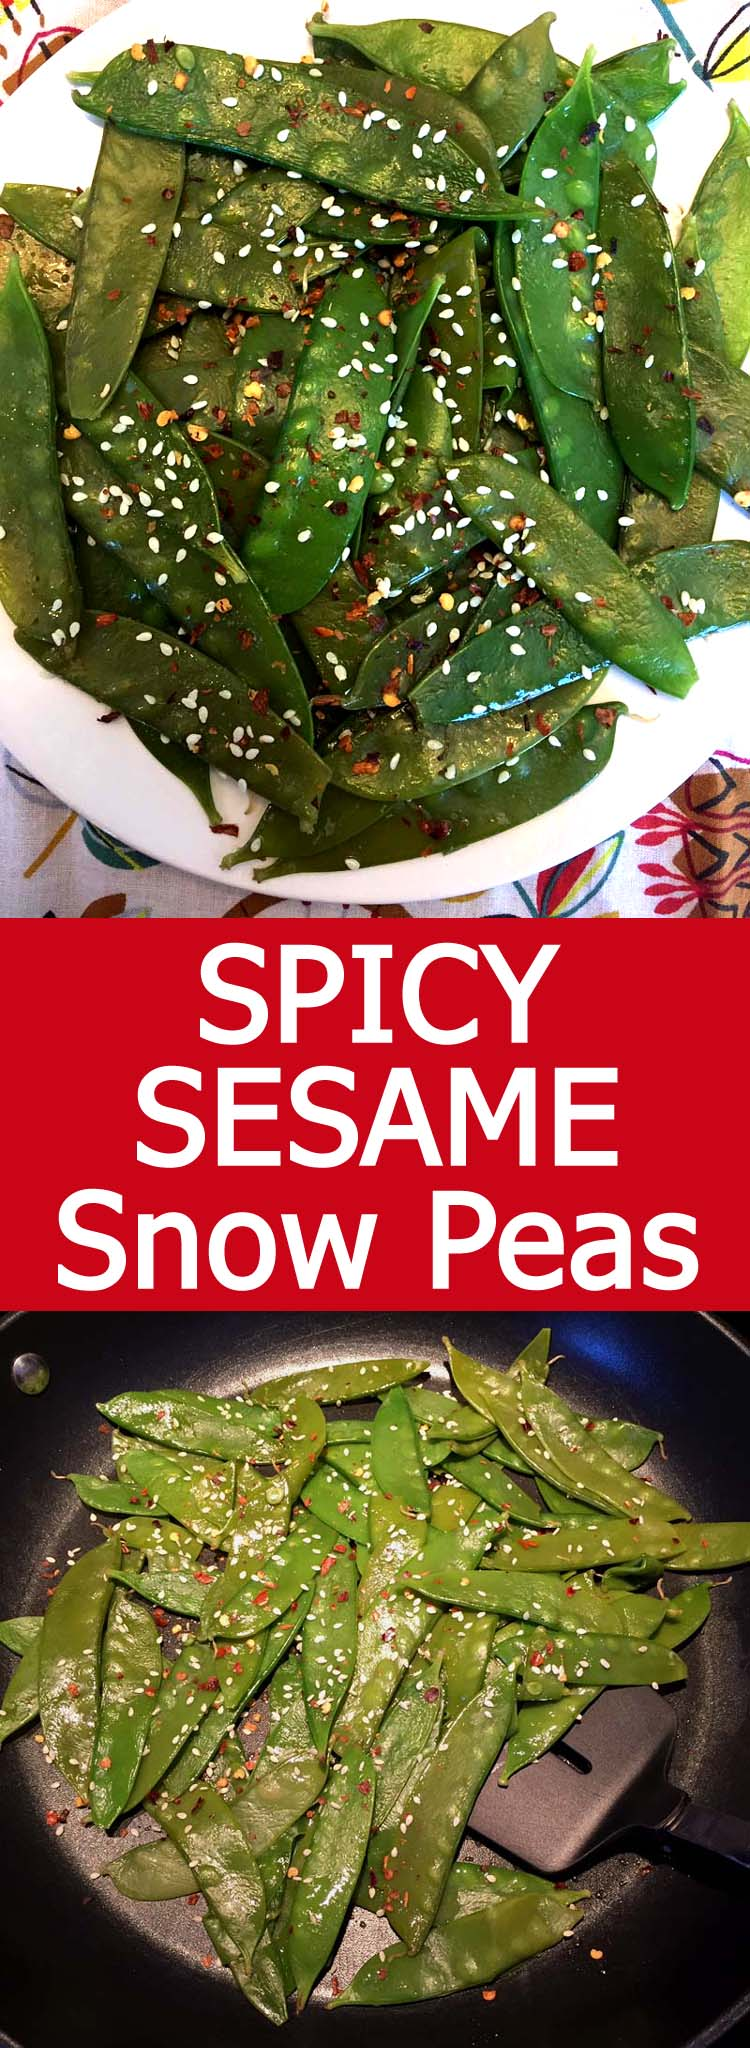 These sauteed sesame snow peas are so addictive! So spicy and garlicky! Super easy to make, healthy and delicious!